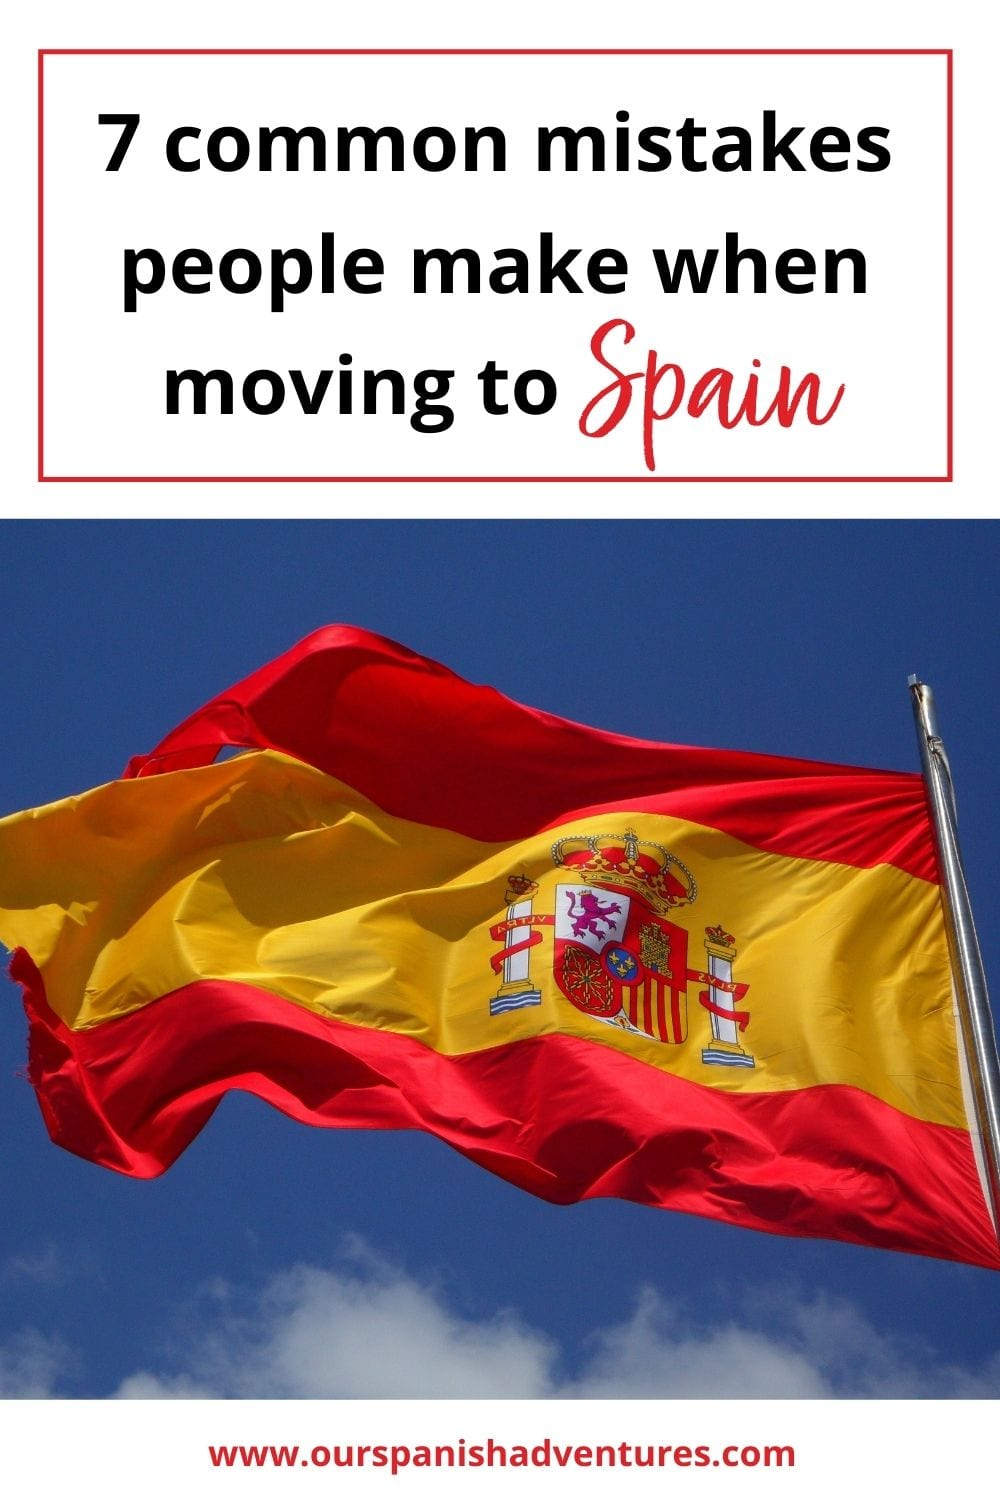 7 common mistakes people make when moving to Spain | Our Spanish Adventures